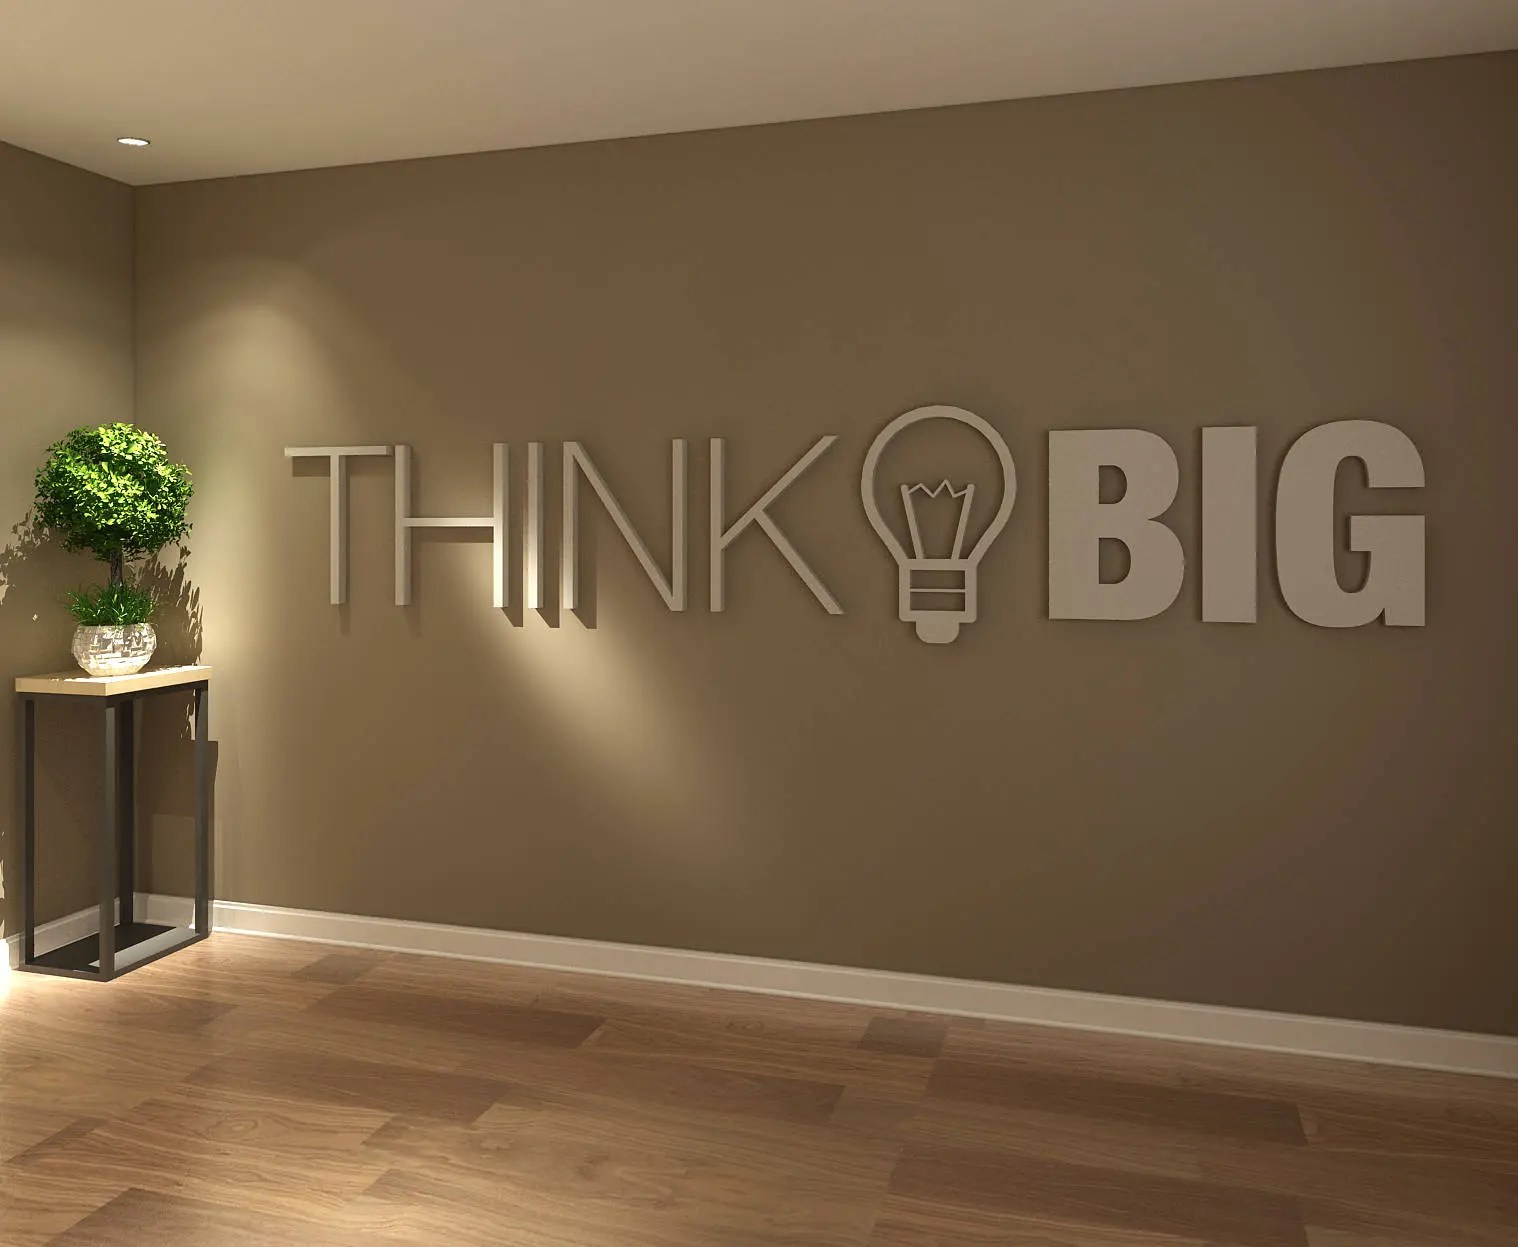 Best Think Big Office Wall Art Decor 3D Pvc Typography Etsy This Month